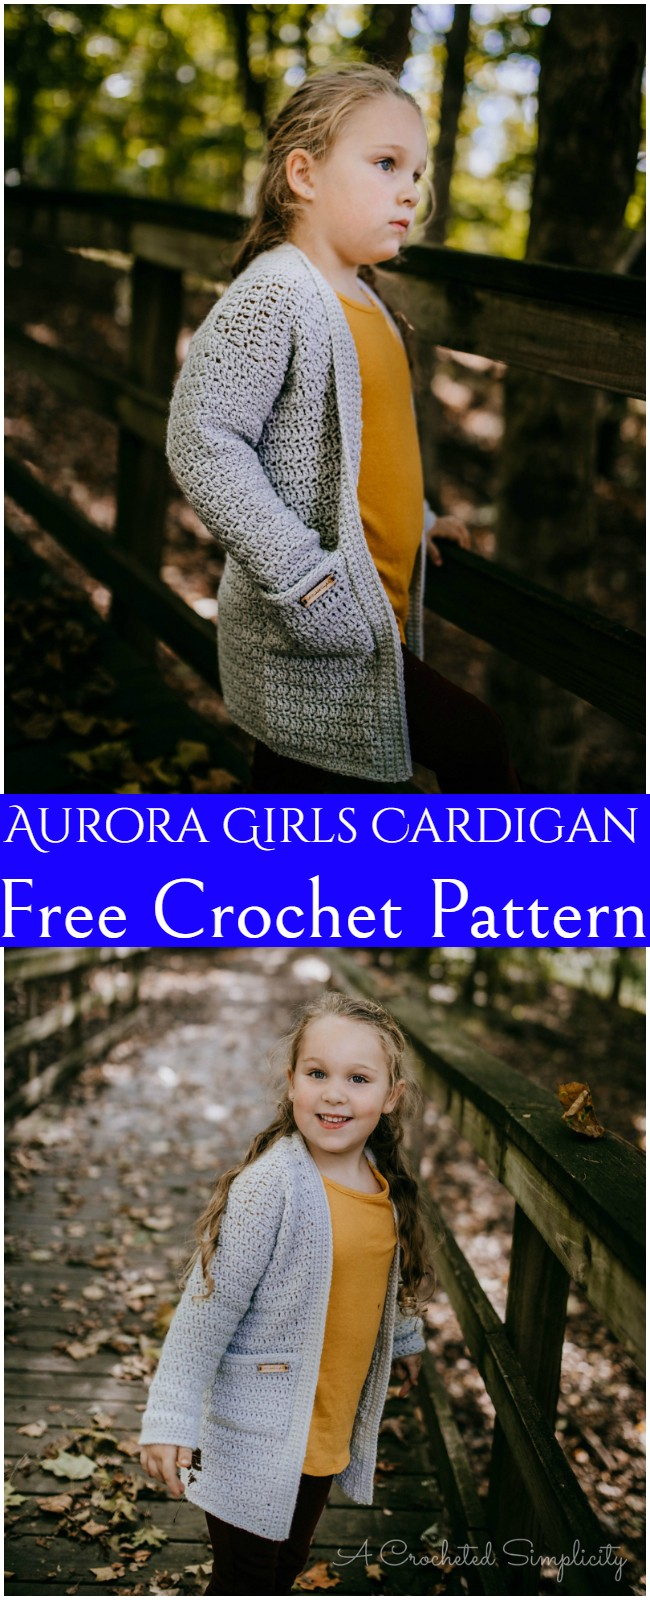 Crochet Aurora Girls Cardigan Pattern